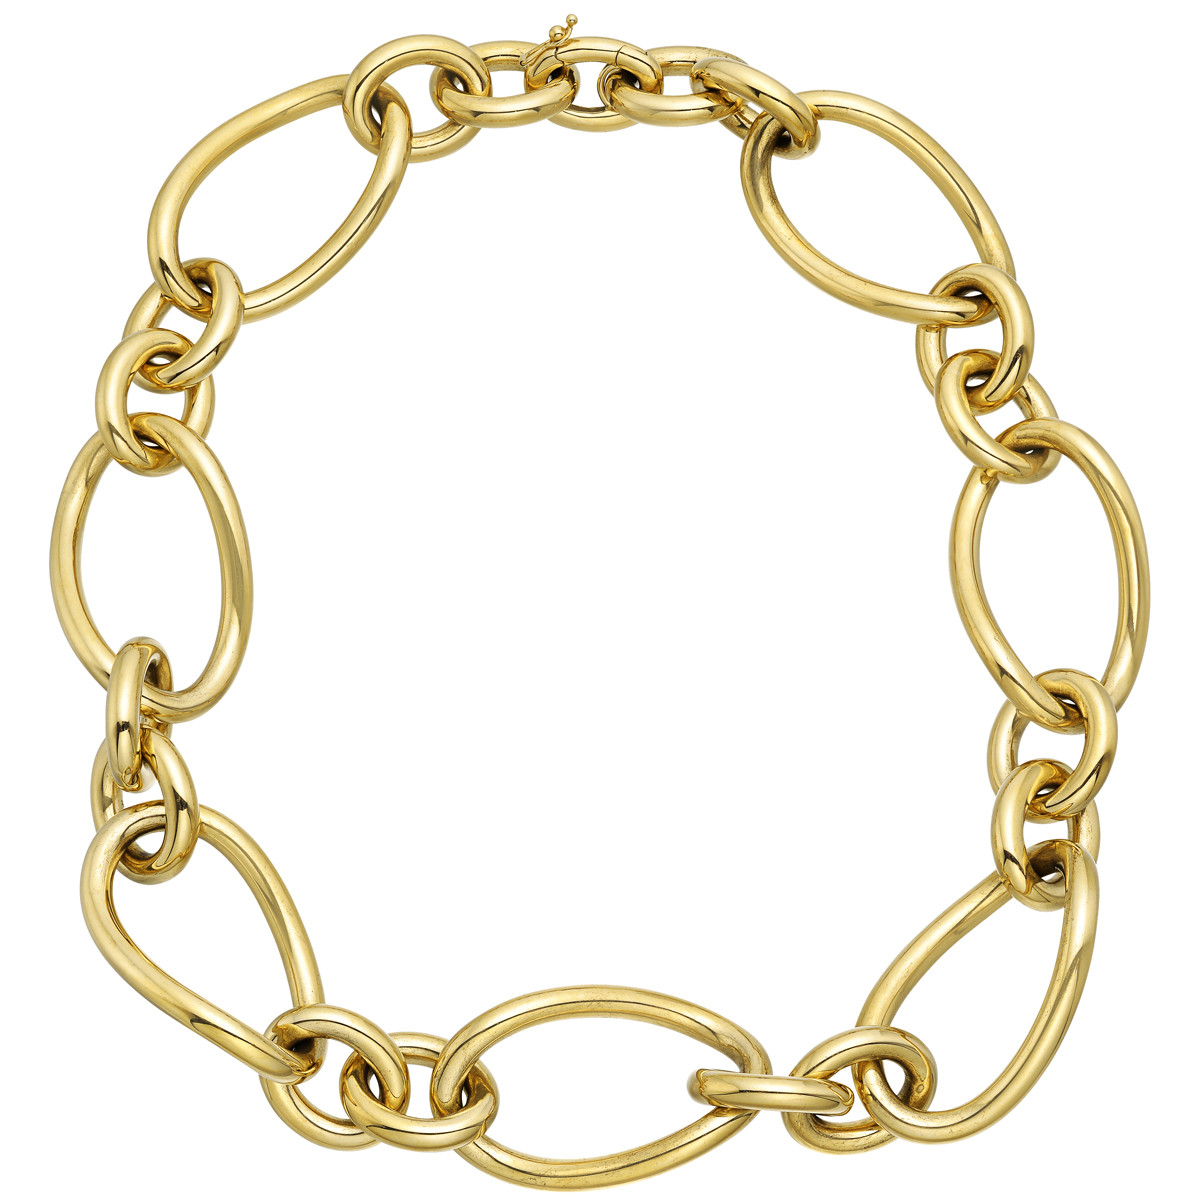 18k Yellow Gold Oval & Round Link Necklace